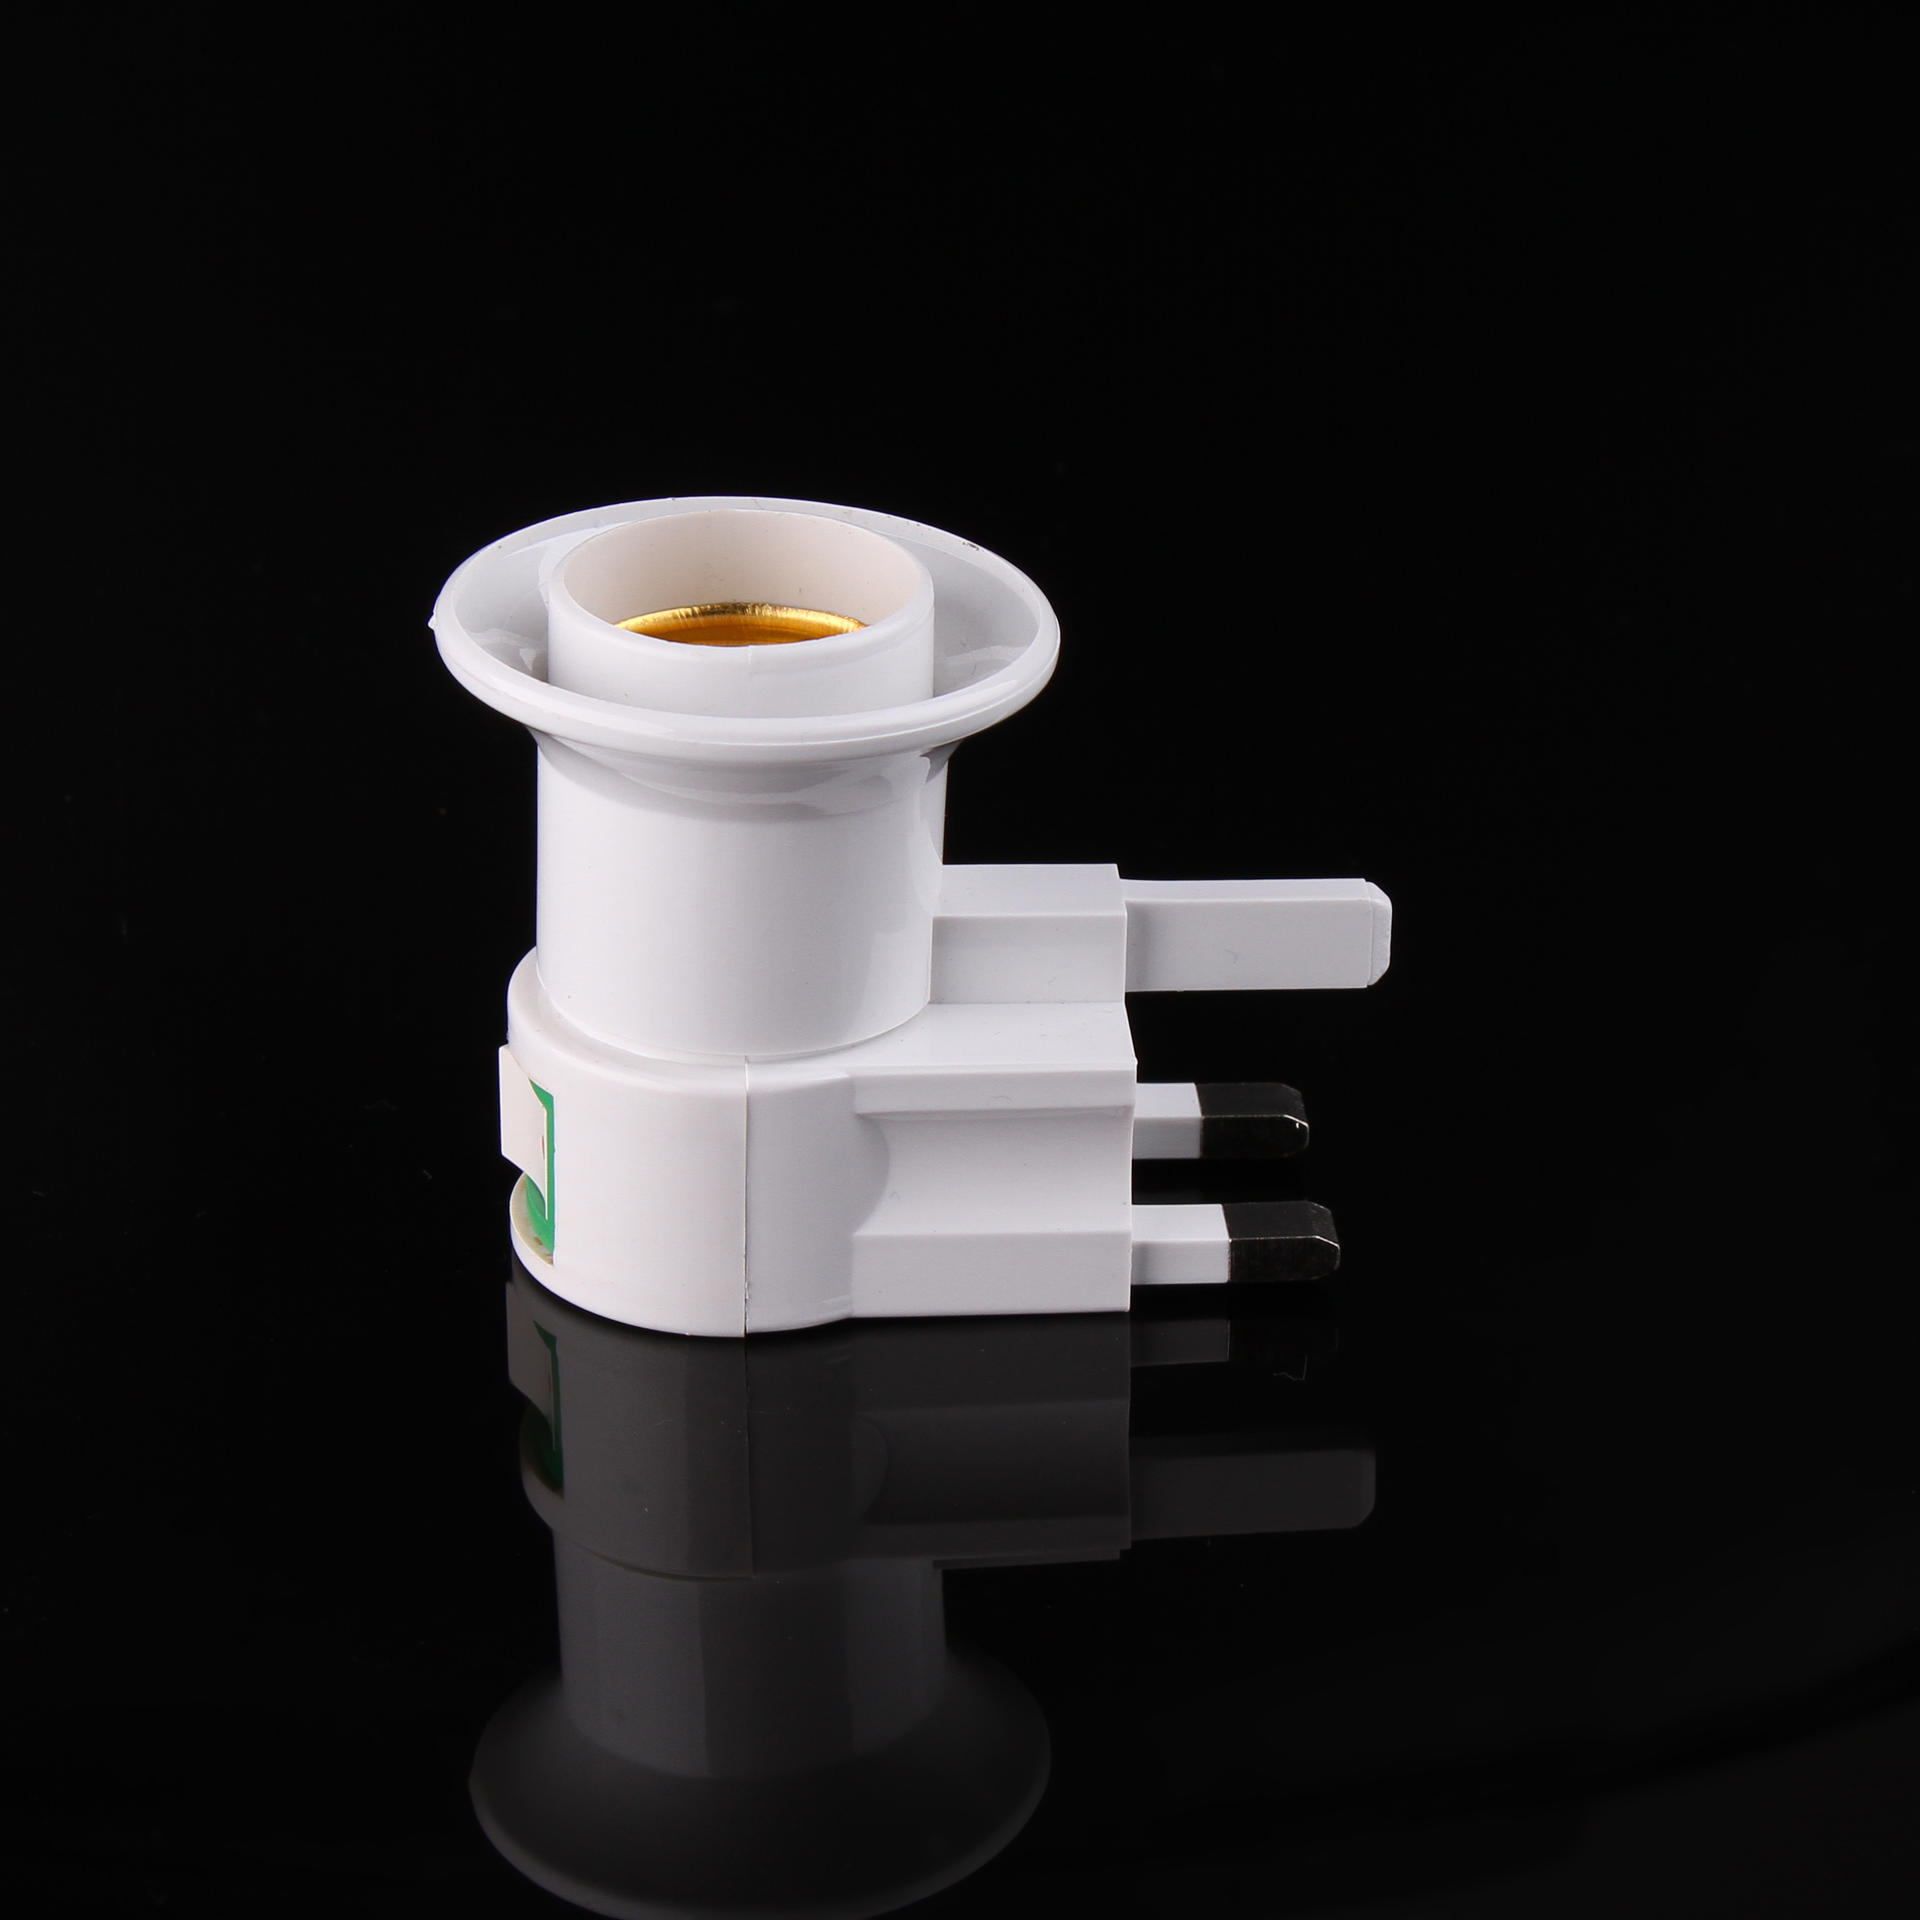 UK standard lamp electrical plug in socket e27 lampholder with switch